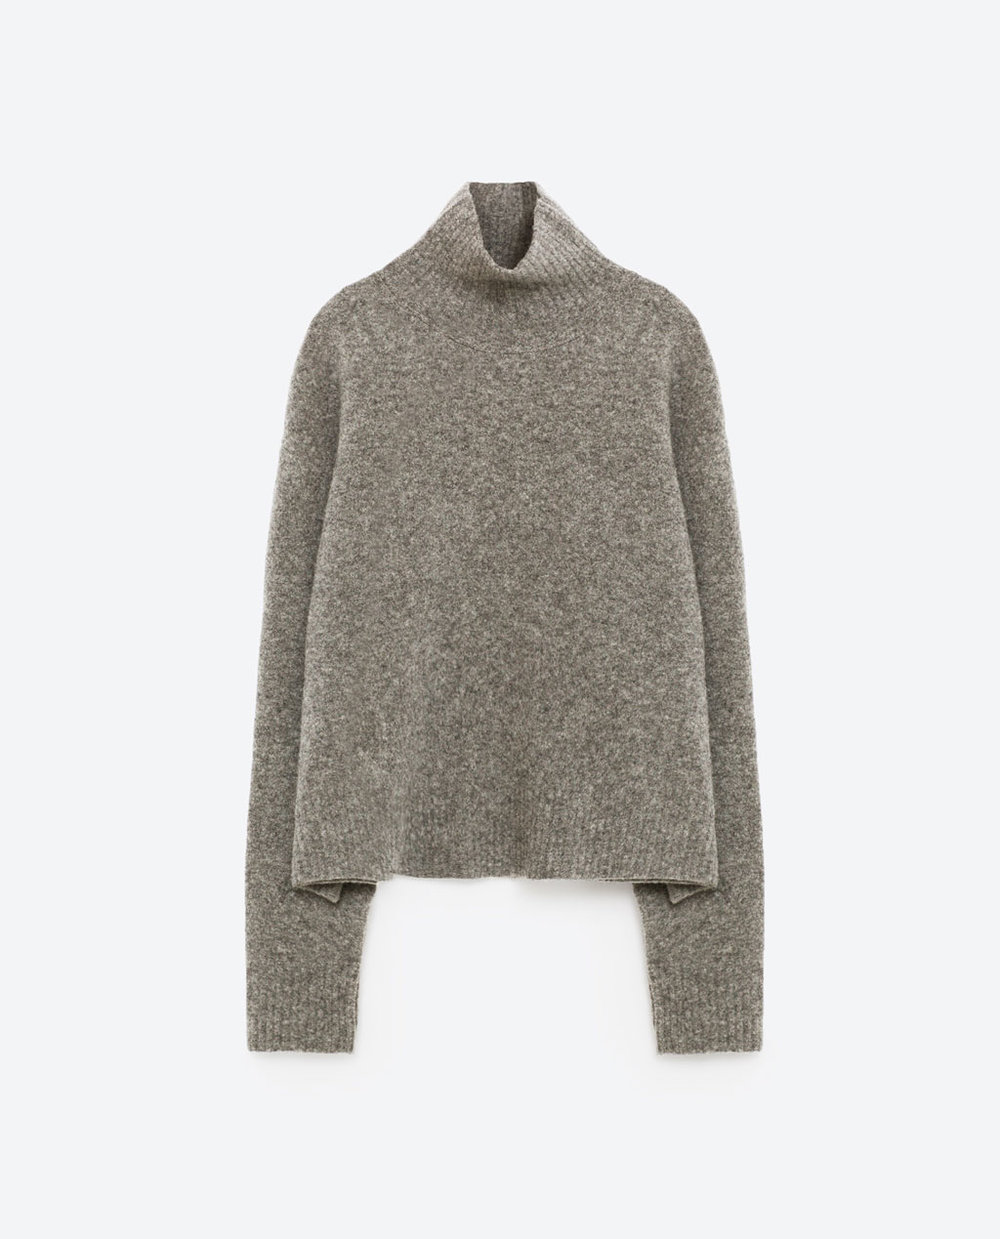 wool sweater $100